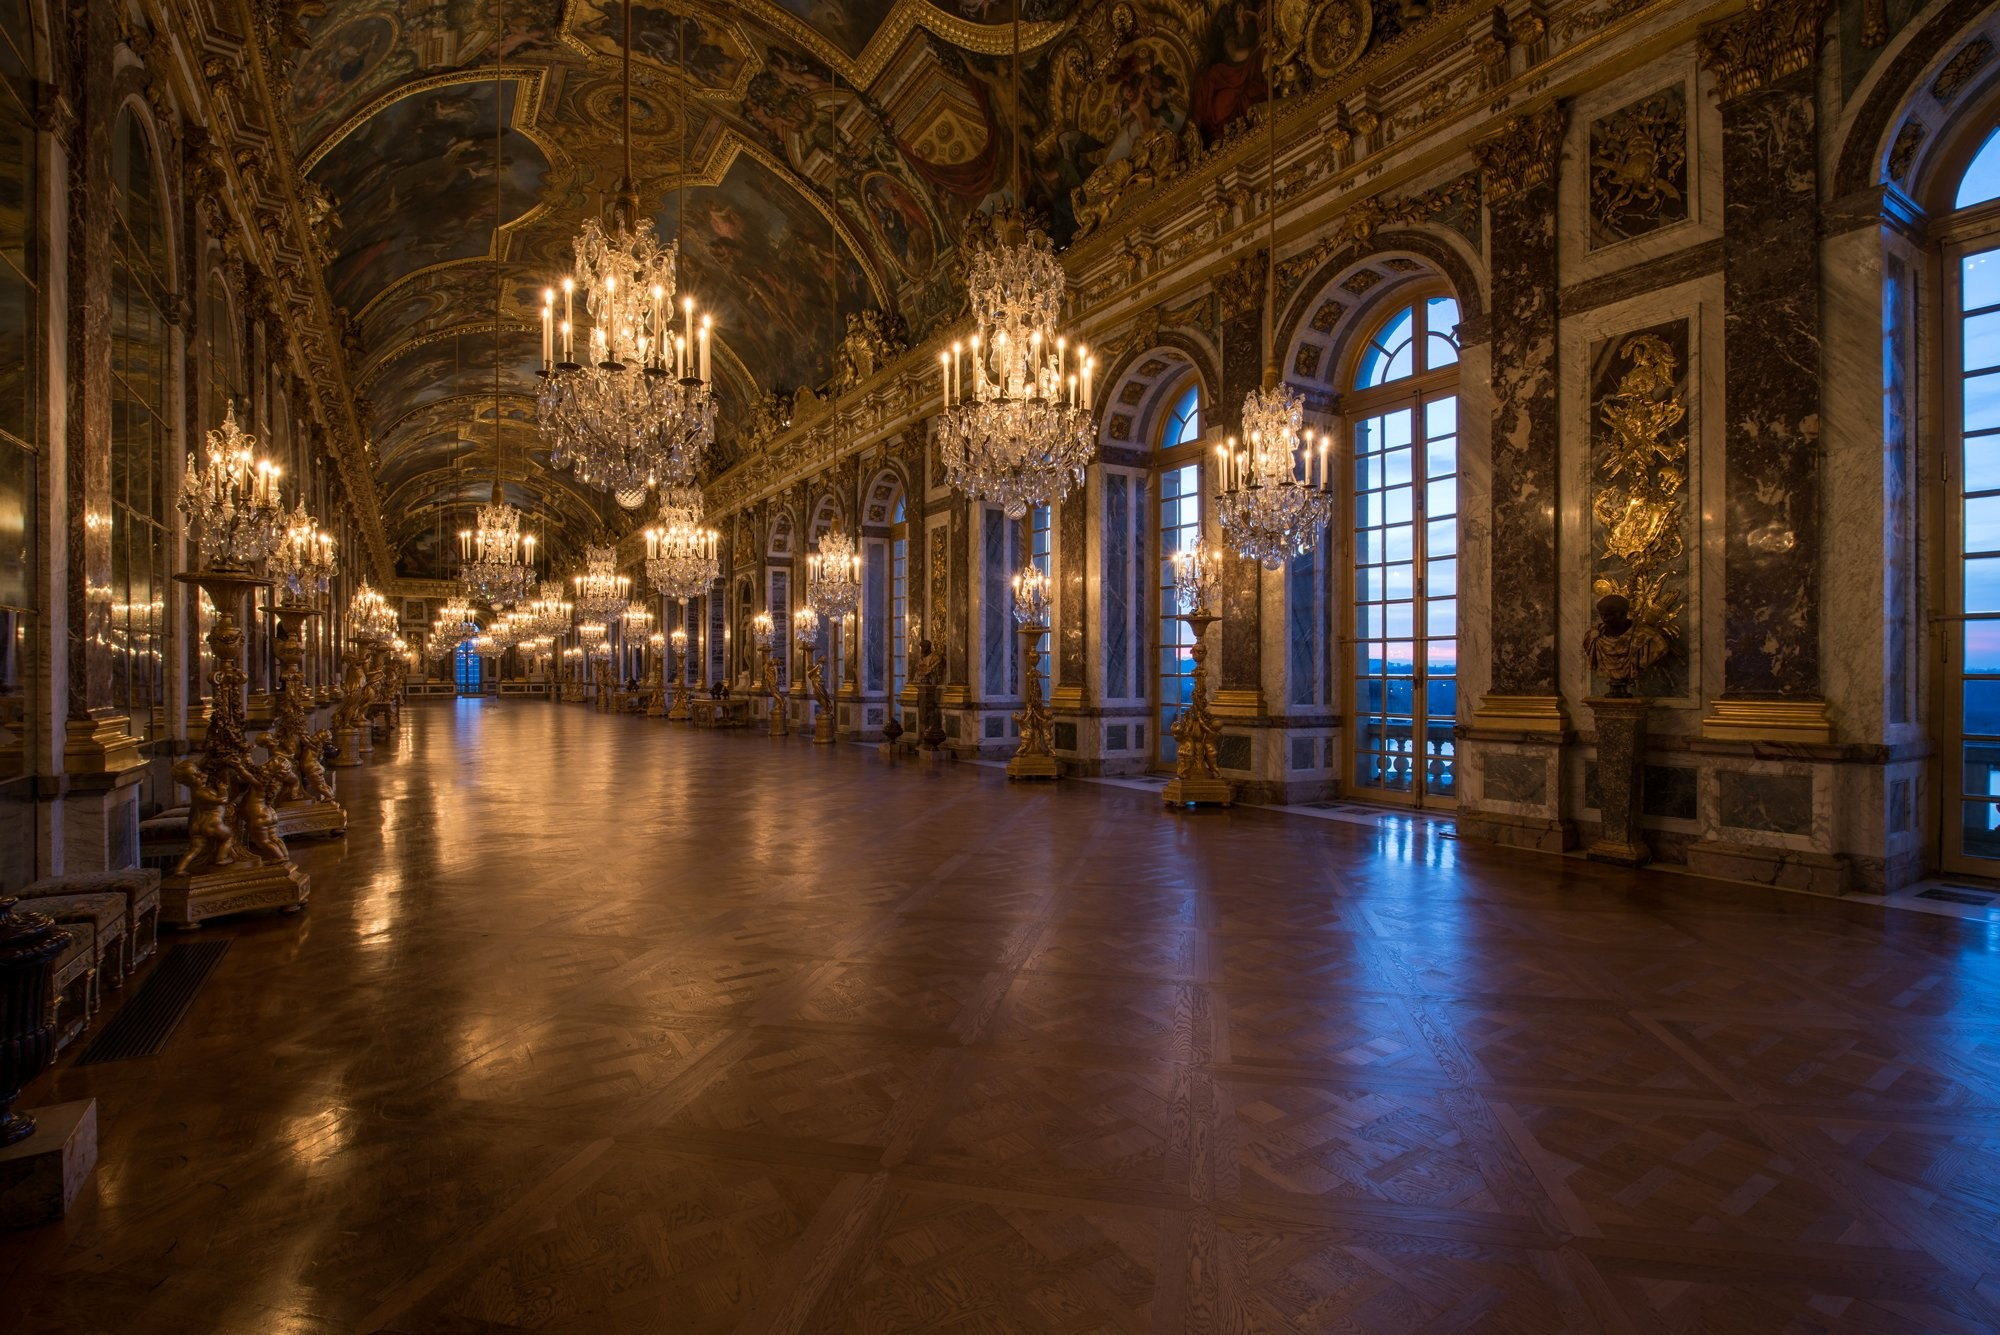 versailles the royal palace in paris Many visitors buy expensive bus tours and let themselves be herded around at the former royal palace and gardens a much better option, in our opinion, is to take the rer c train from paris to versailles.